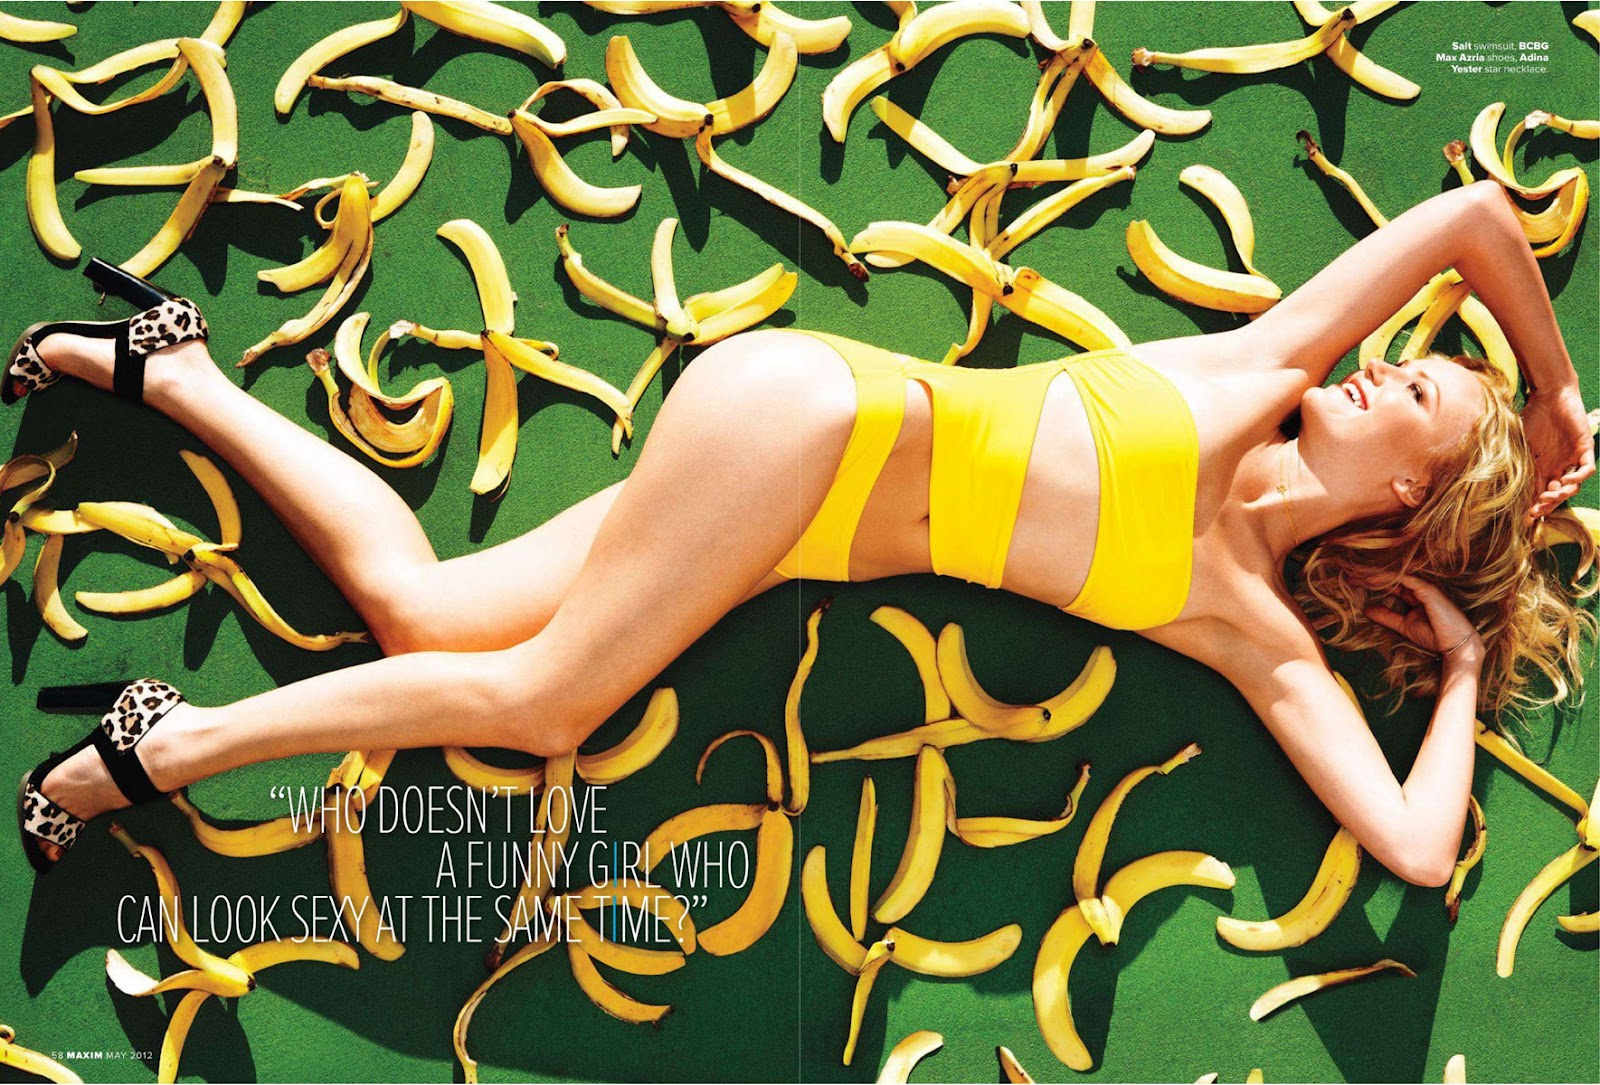 http://4.bp.blogspot.com/-5n4KejArh94/T5BY9jqrxeI/AAAAAAAABD0/cdfM9B8qalM/s1600/MALIN-AKERMAN-Maxim-Magazine-May-2012-Issue-03.jpg